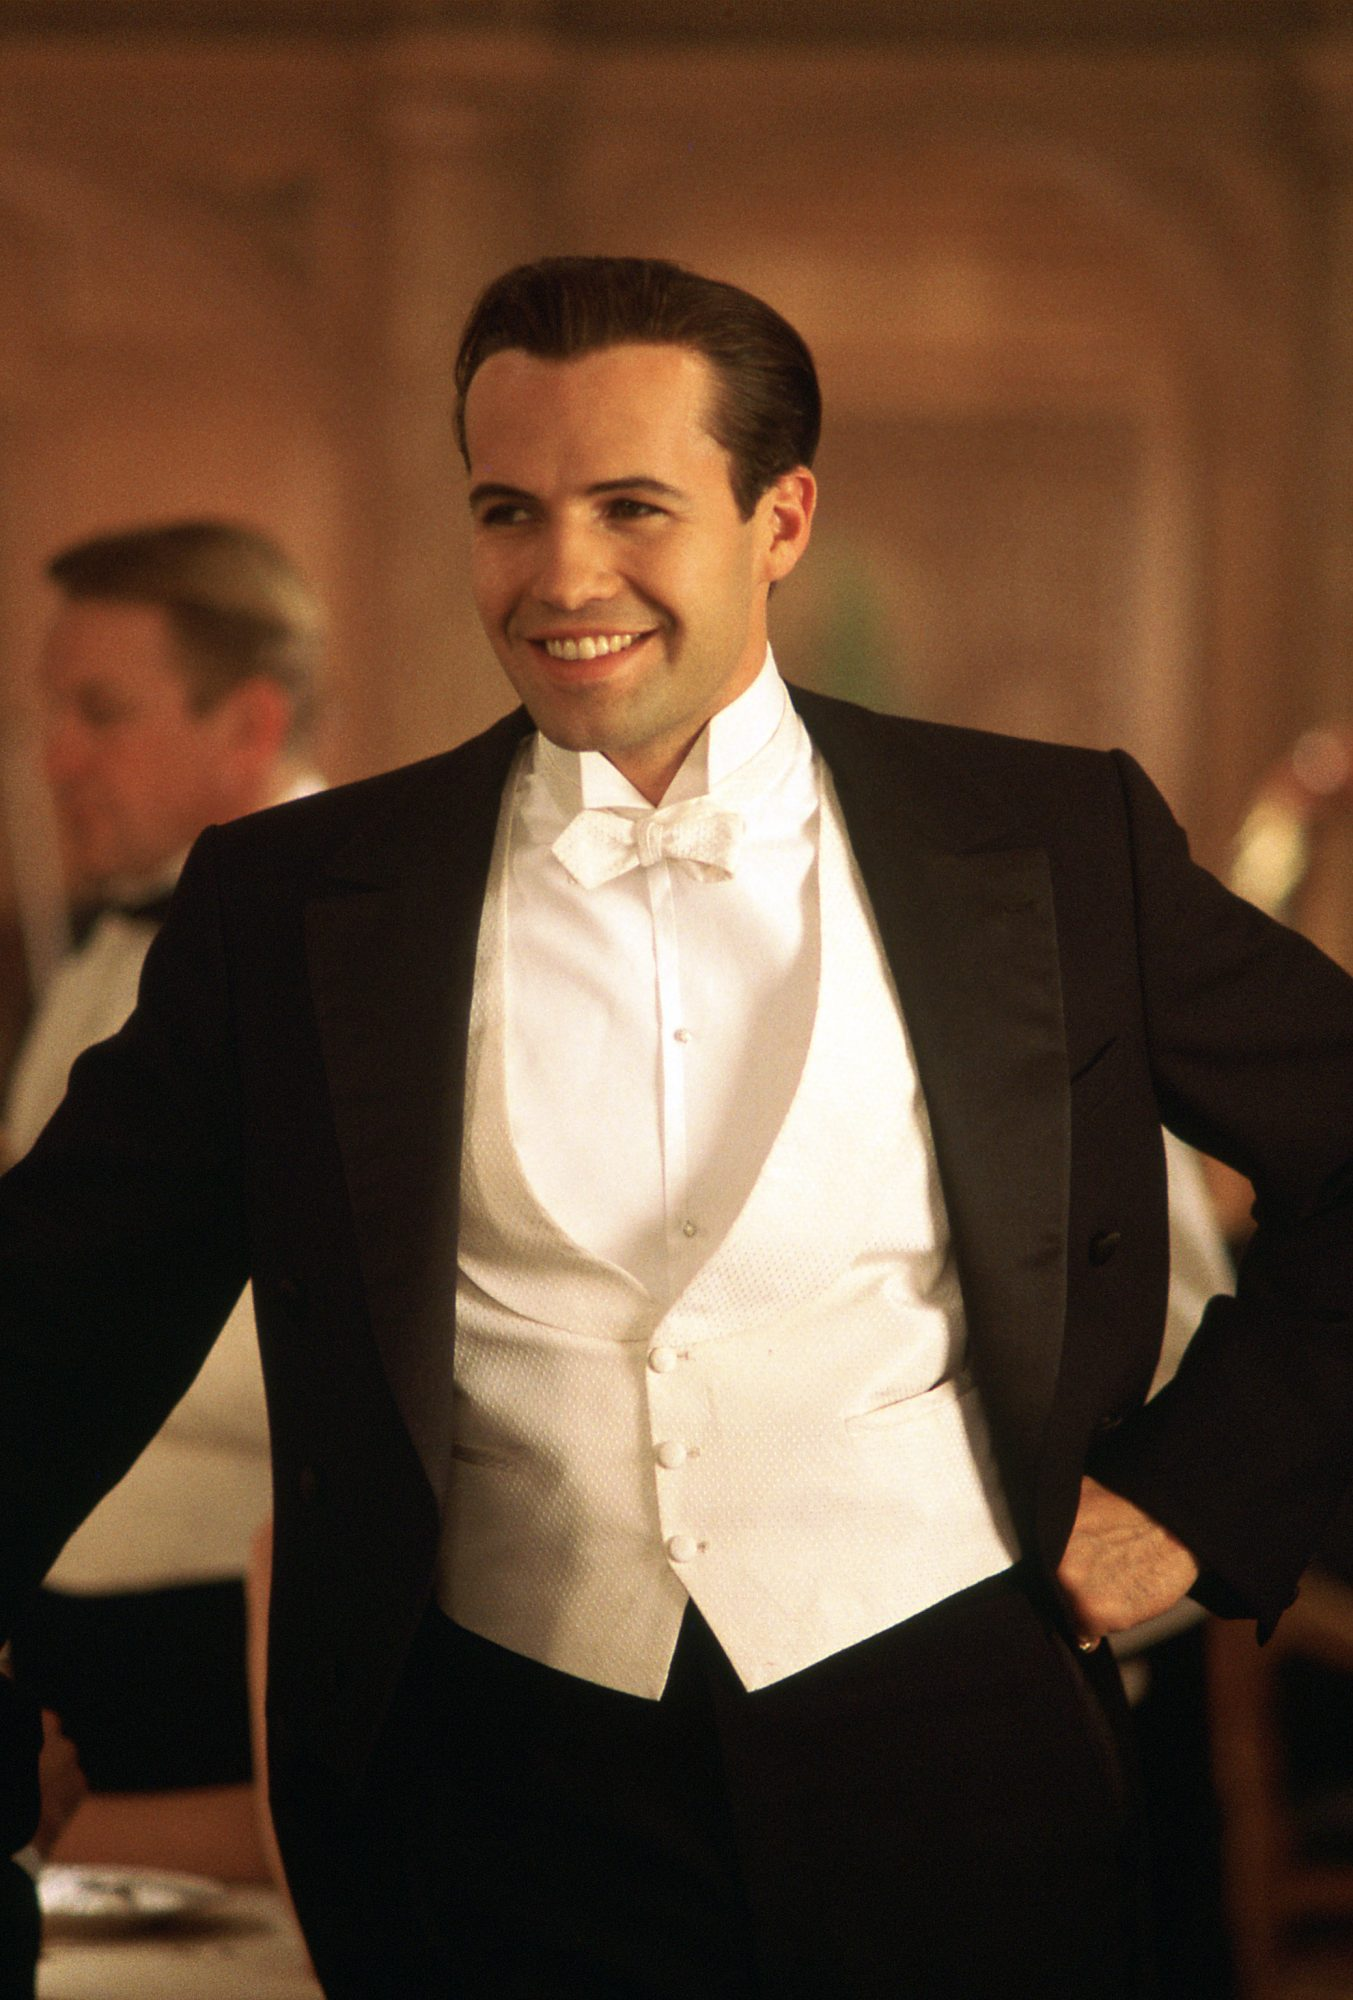 TITANIC, Billy Zane, 1997, TM & Copyright ©20th Century Fox Film Corp. All rights reserved, Courtesy